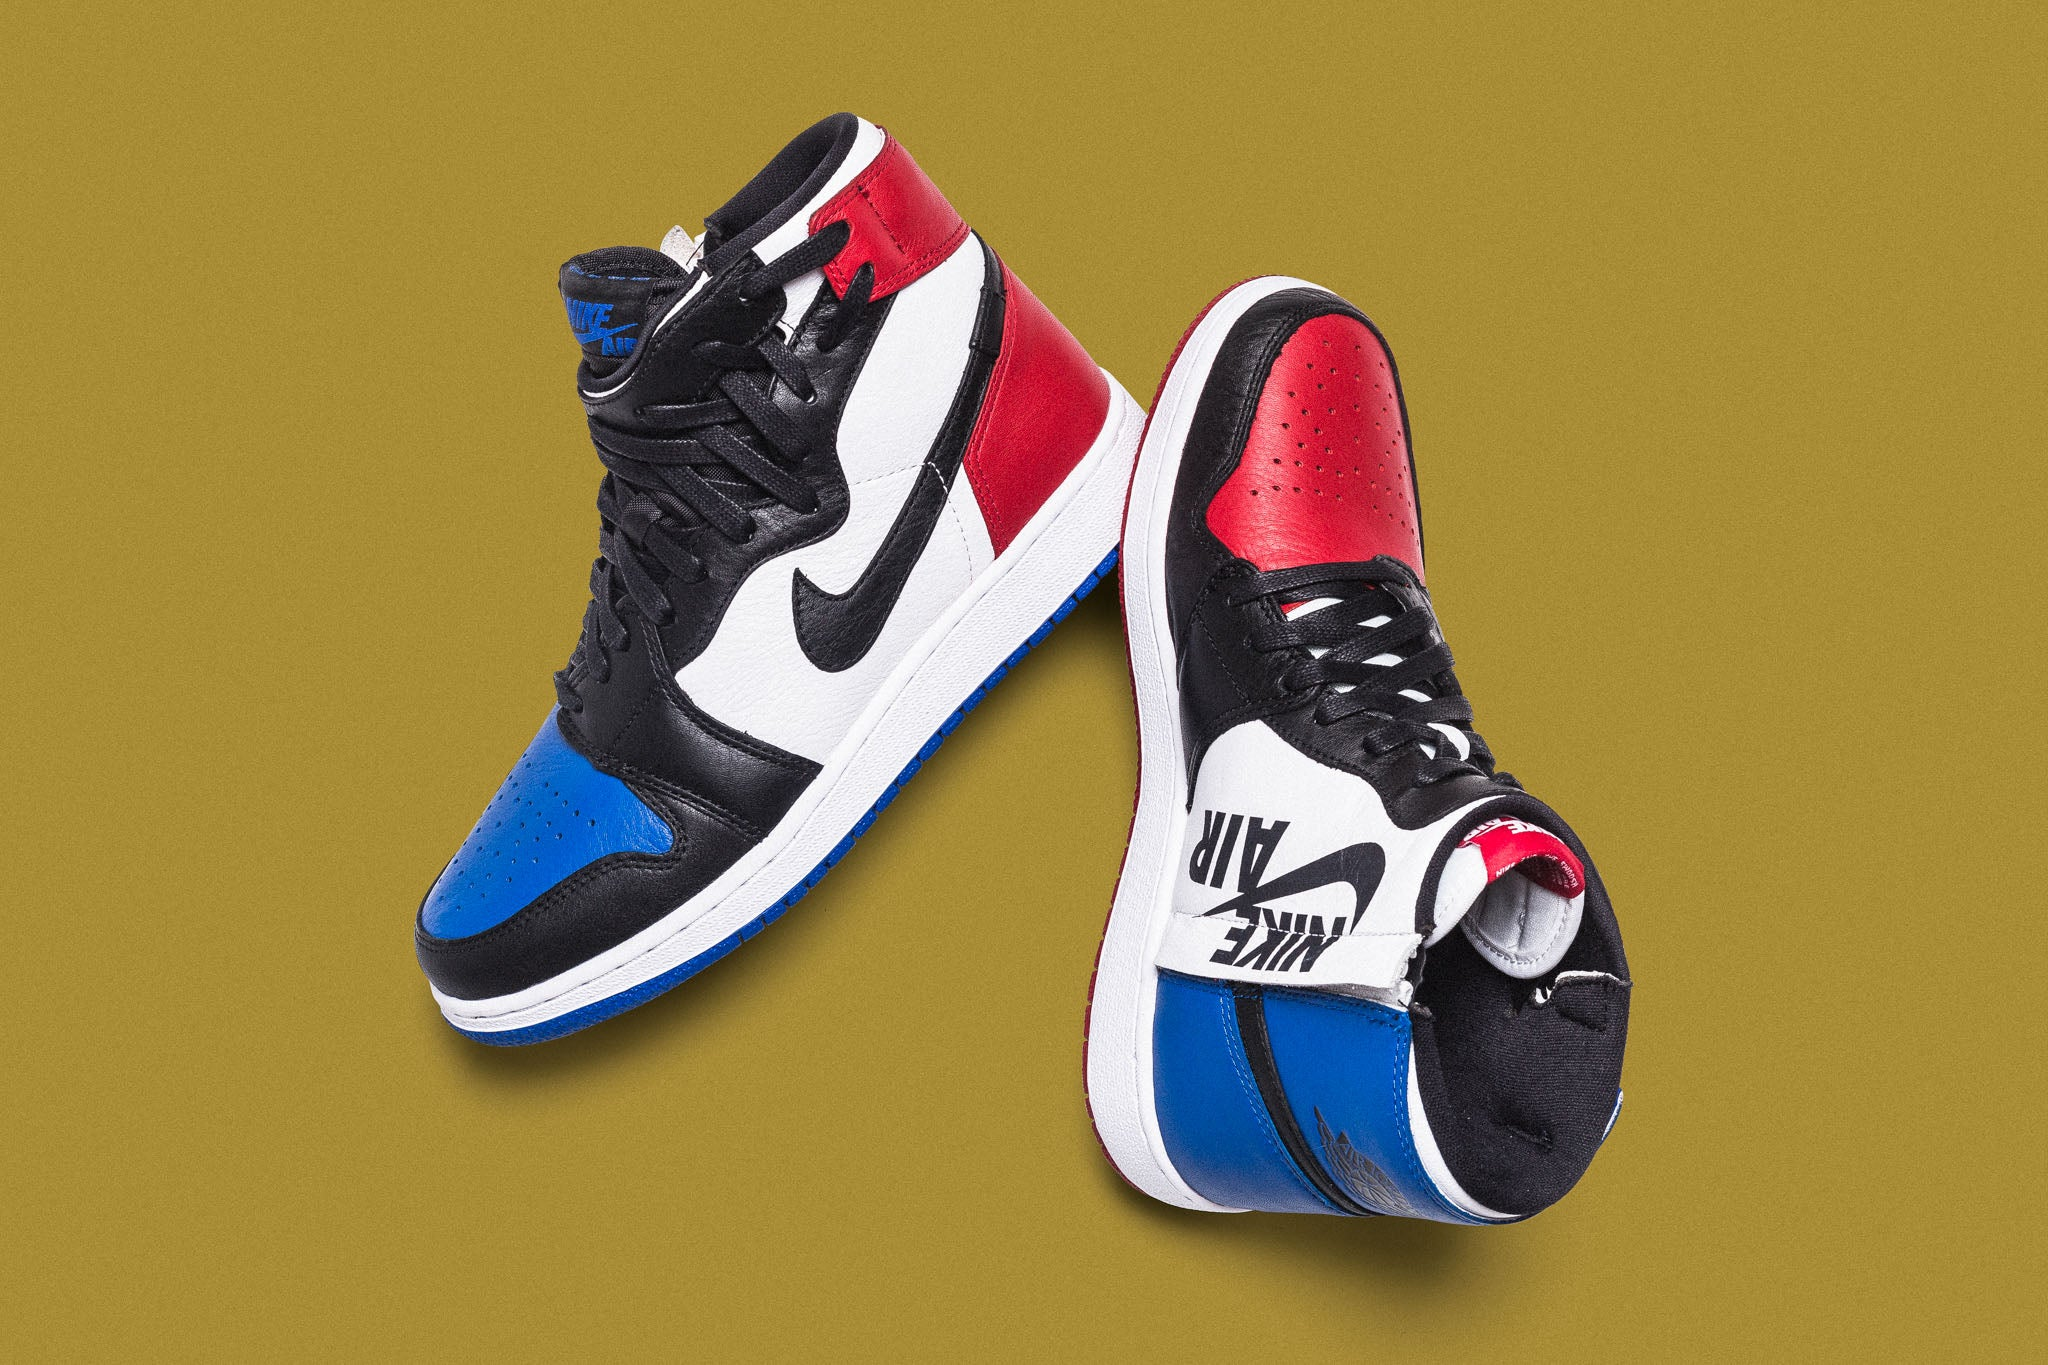 premium selection f0b87 dbb25 The Air Jordan 1 gets warped and twisted, reimagined for a new generation  of taste and fashion. The Women s Air Jordan 1 Rebel XX warps the upper  lacing to ...